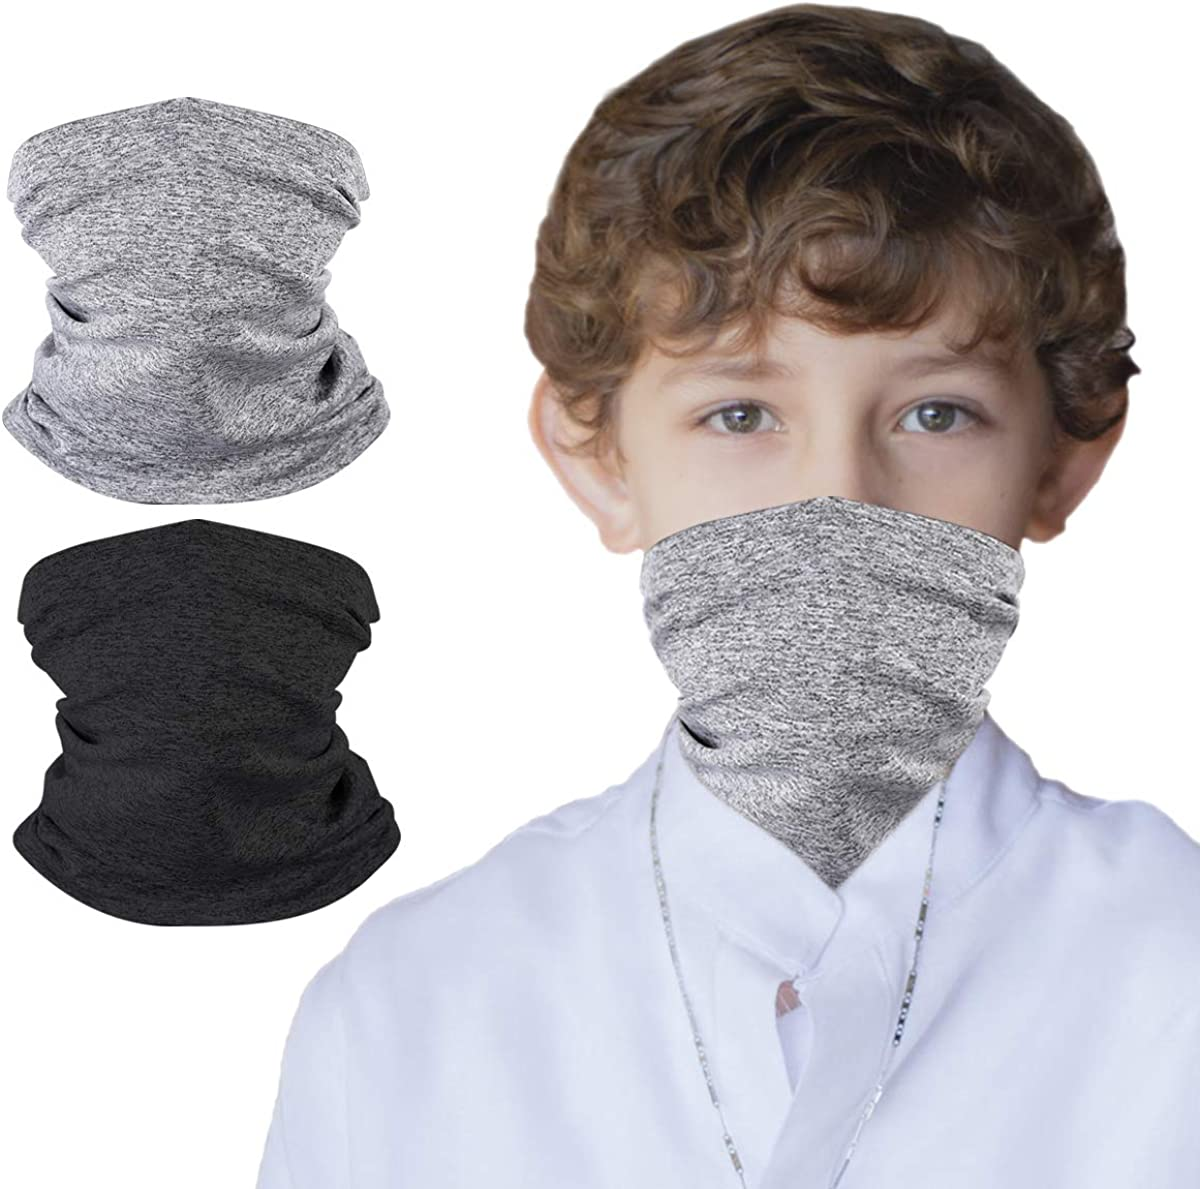 Kids UV Protection Face Cover Neck Gaiter for Hot Summer Cycling Hiking Sport Outdoor